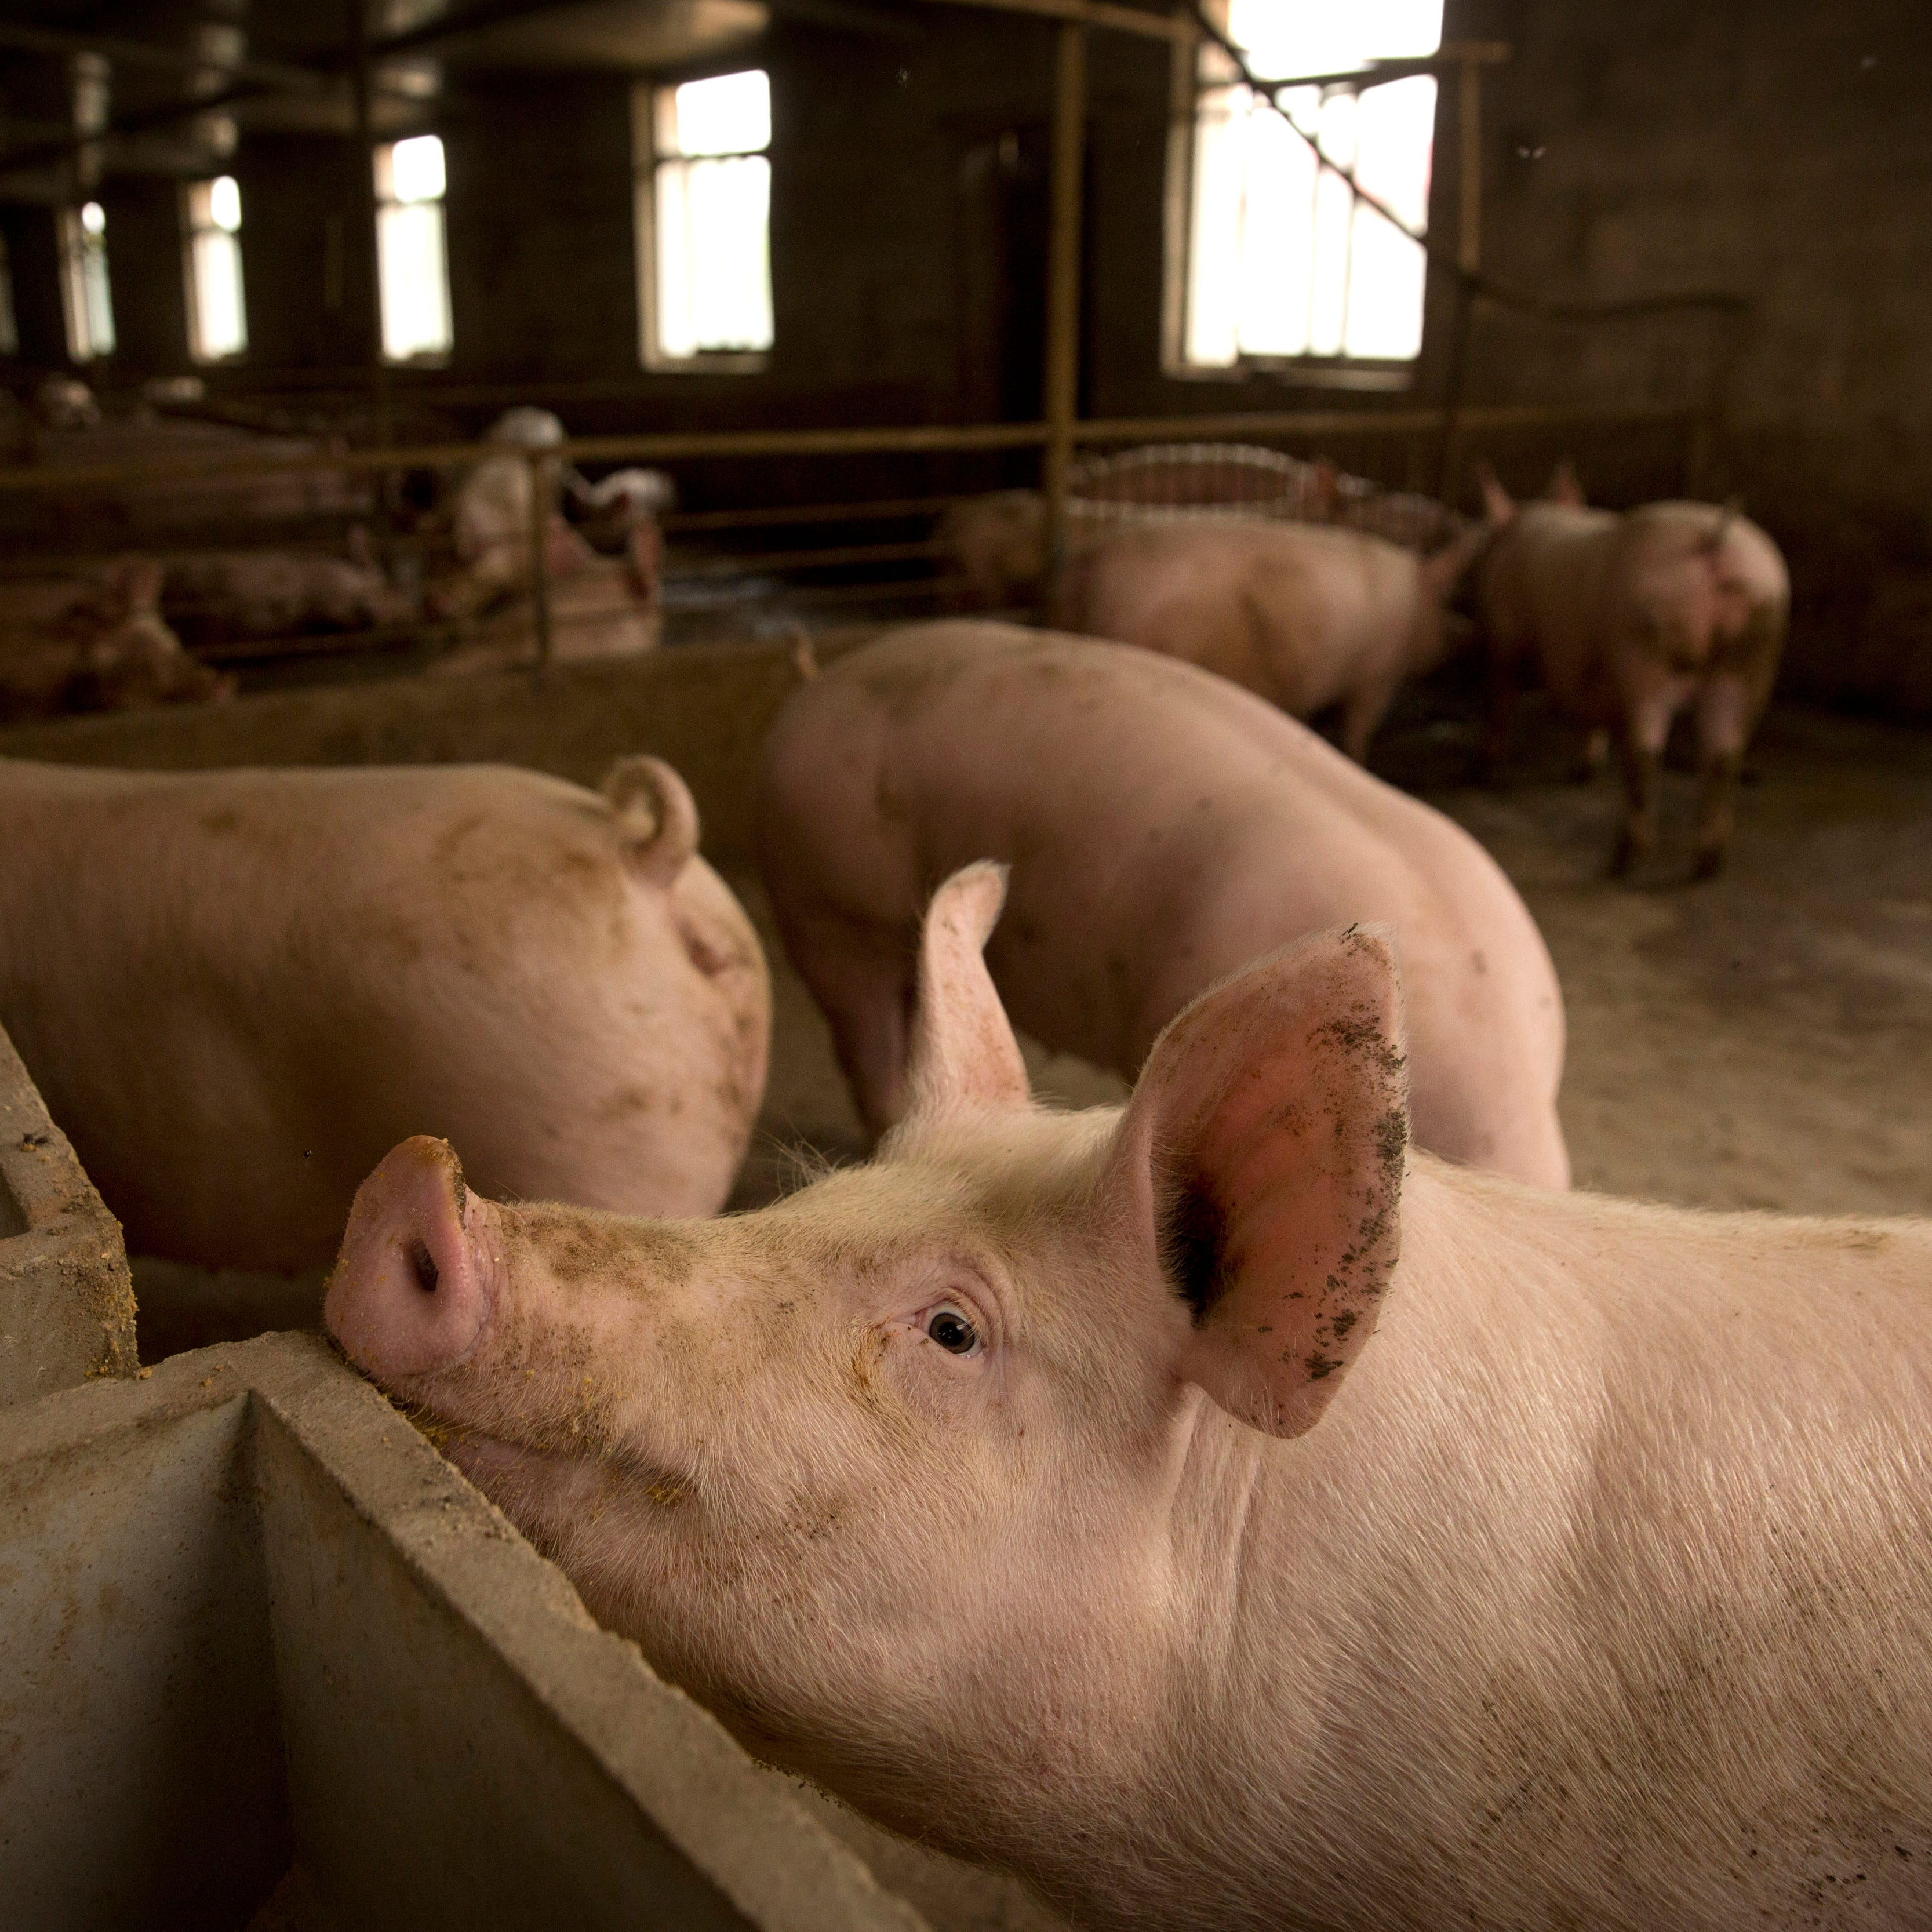 China swine fever outbreak sends pork prices soaring, threatens shortages